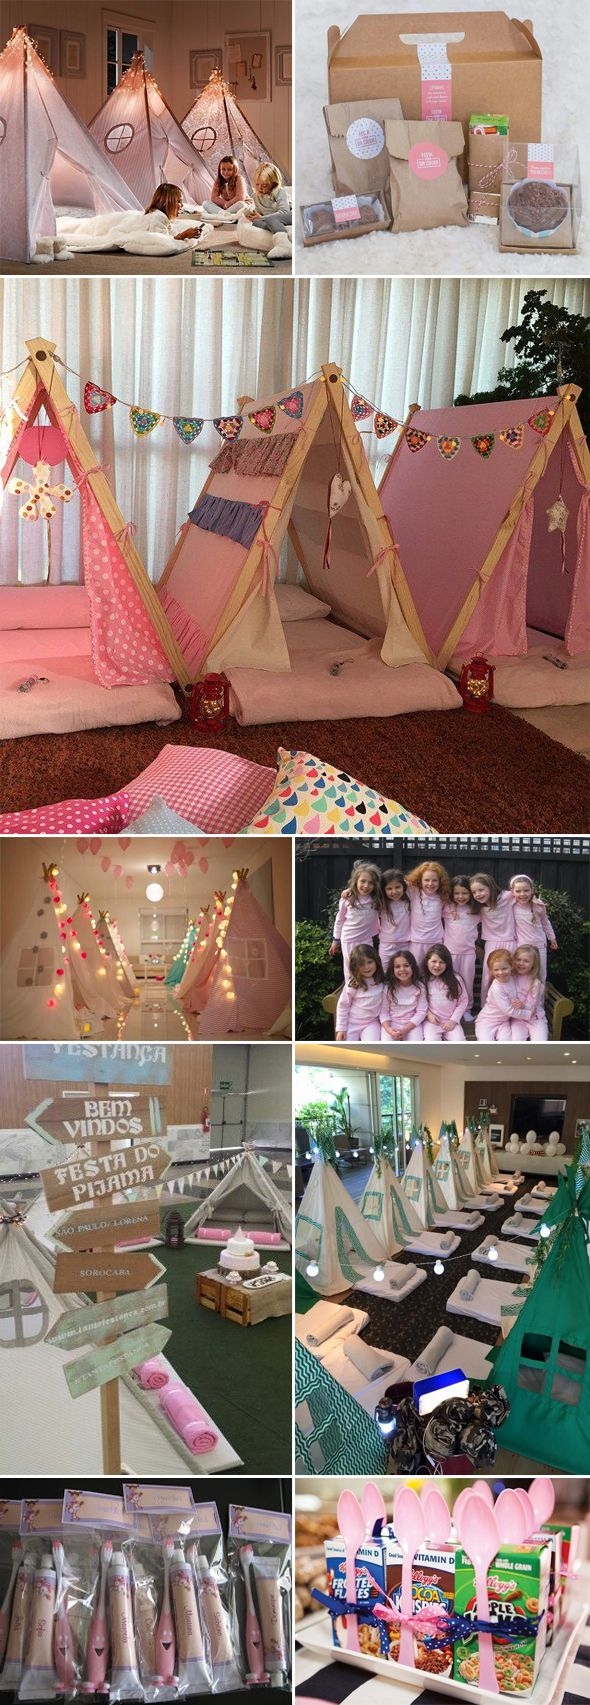 Cutest sleepover idea